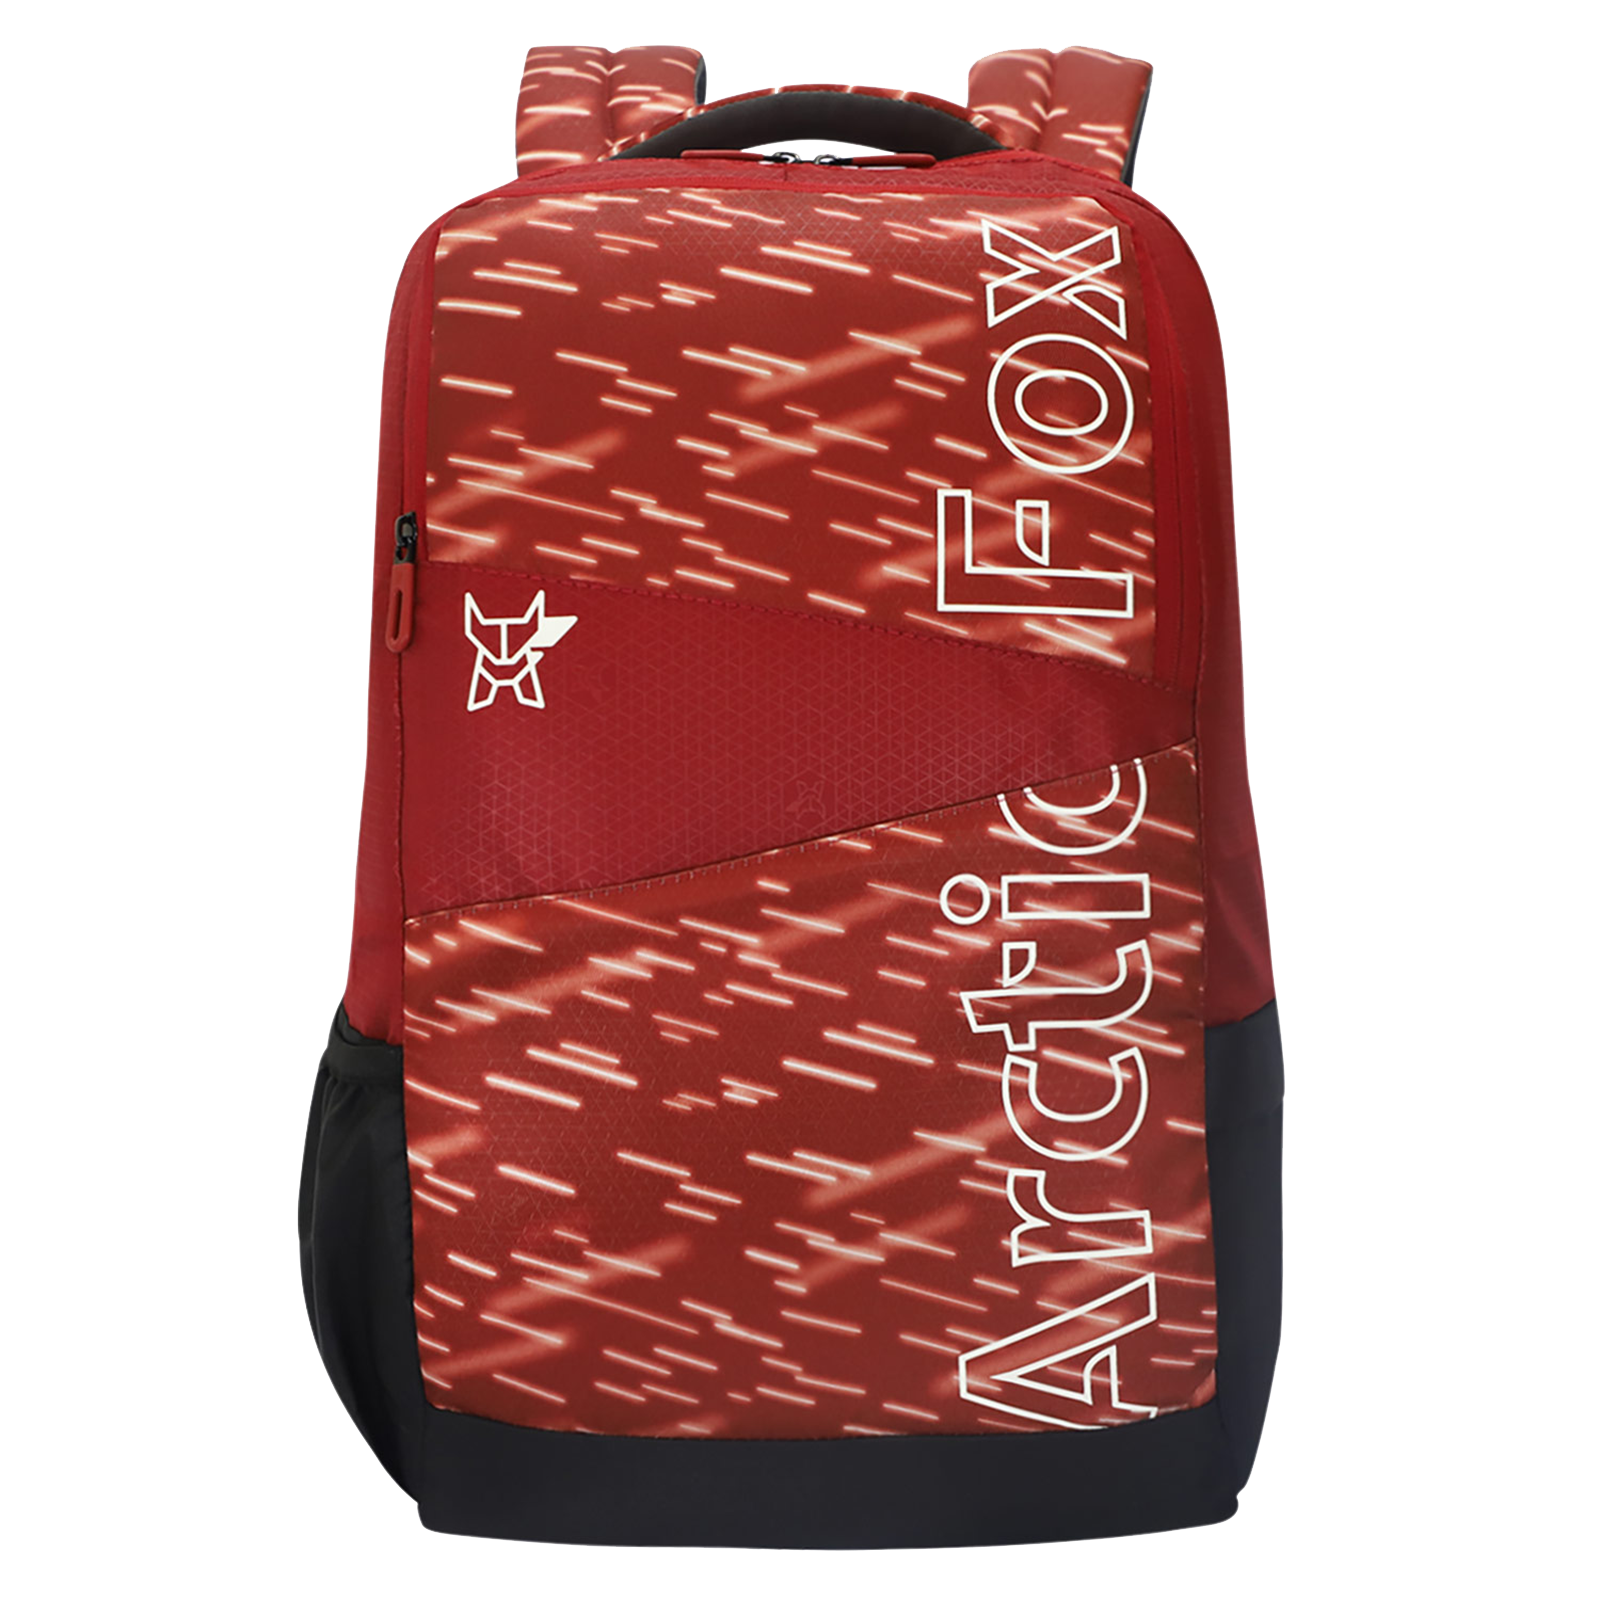 Arctic Fox Metrolite 32.5 Litres PU Coated Polyester Backpack (2 Spacious Compartments, FTEBPKRDLON081033, Red)_1